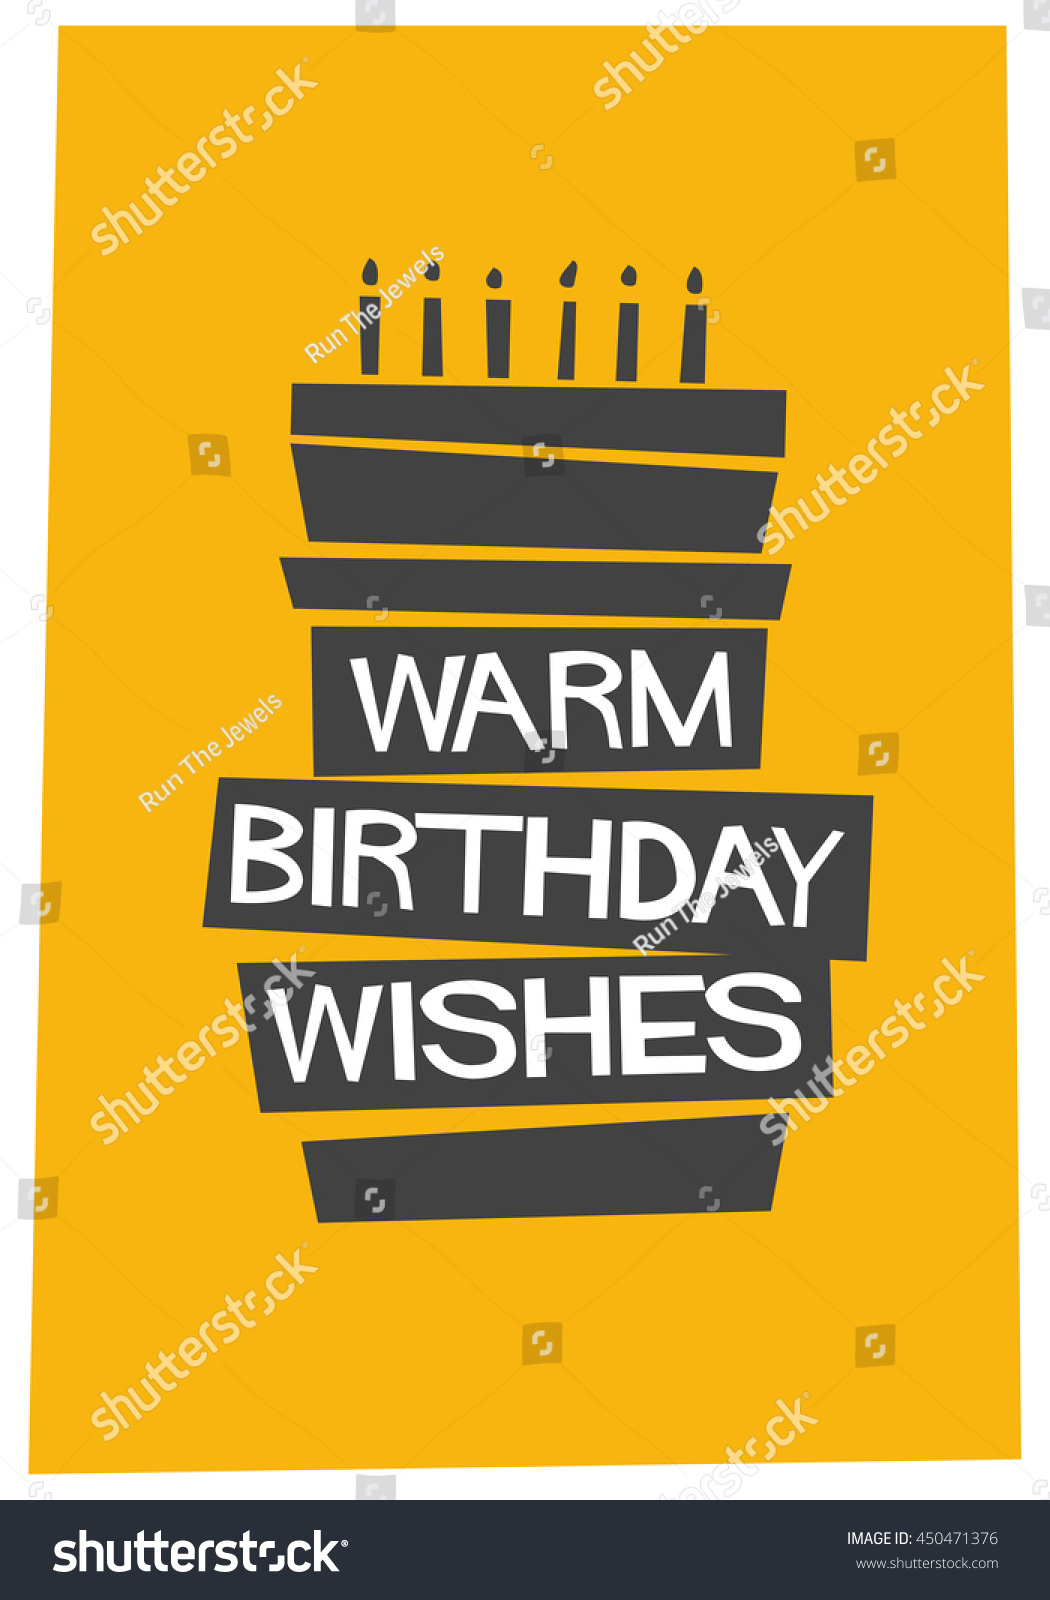 birthday wishes poster making ; stock-vector--warm-birthday-wishes-written-on-a-cake-vector-illustration-in-flat-style-poster-design-450471376